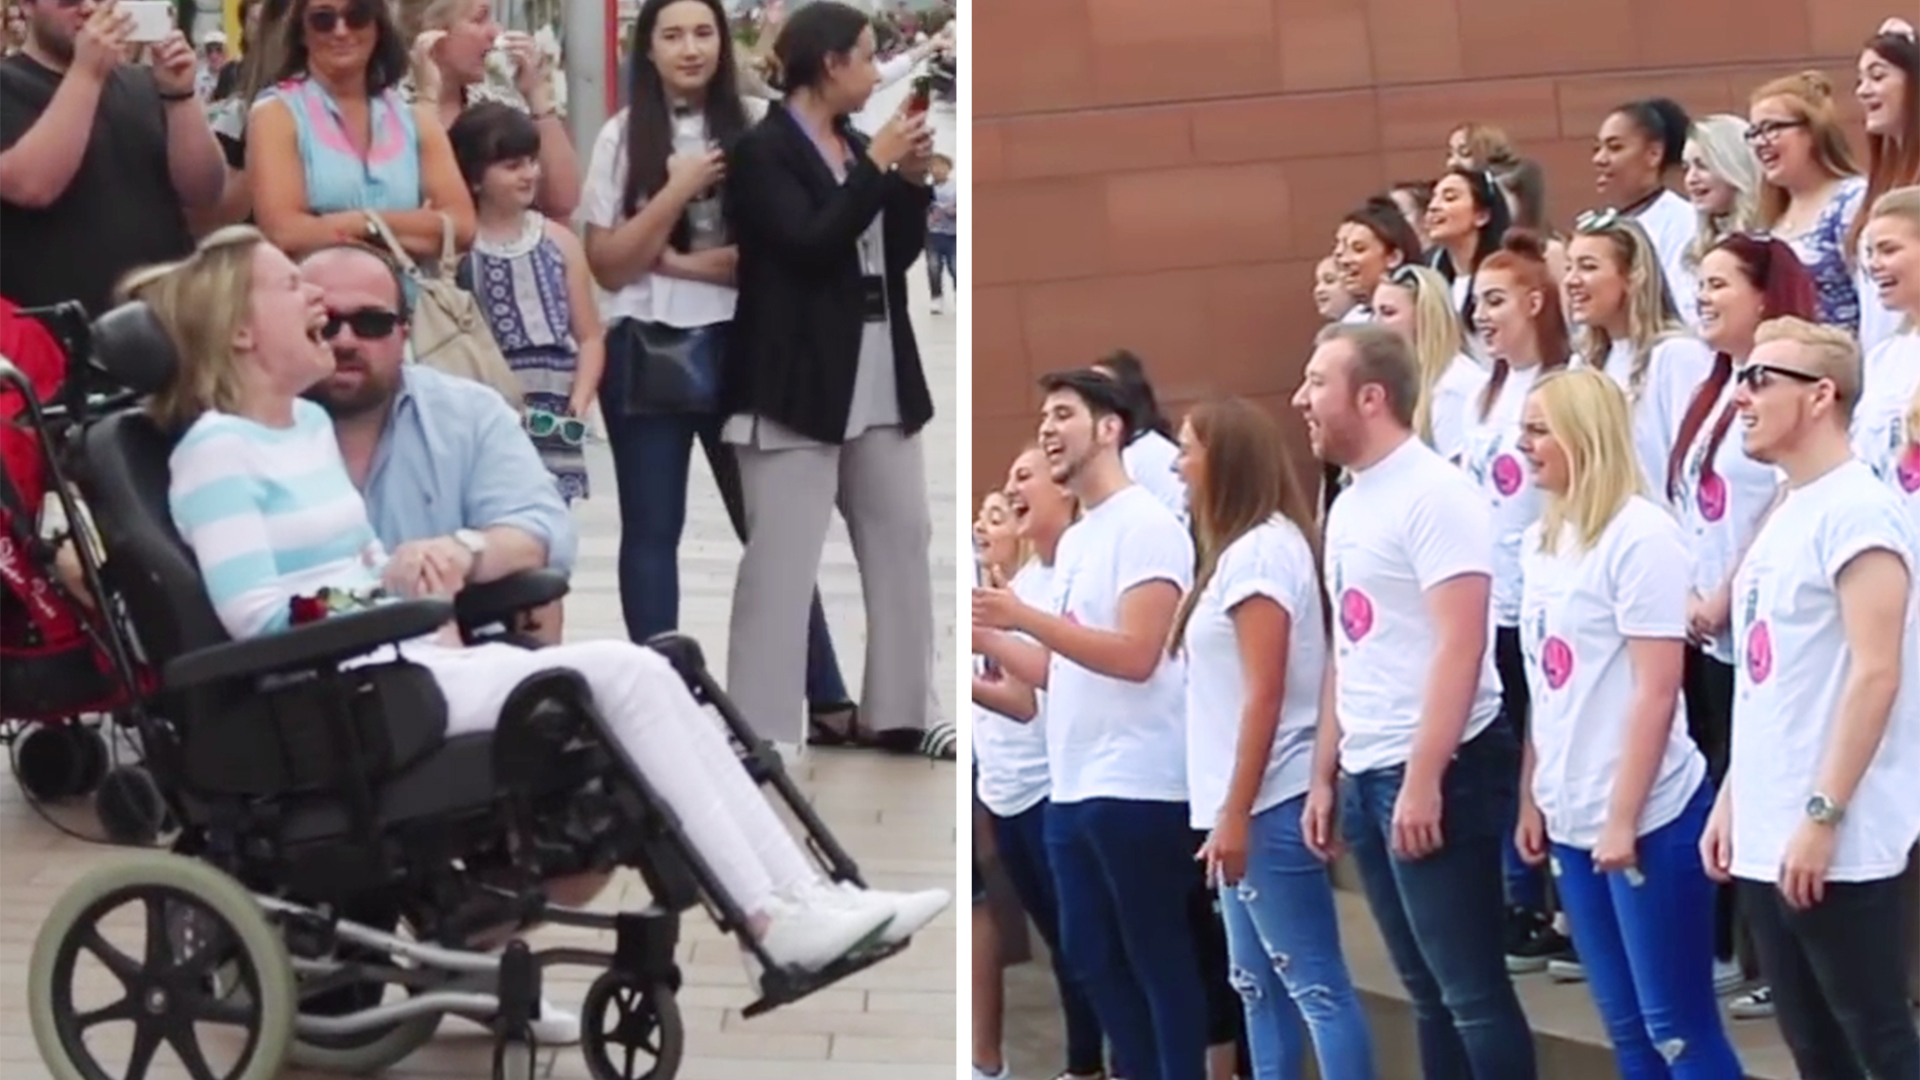 A Mo Bb Husband Plans Unforgettable Flash Mob Surprise For Wife Who Has Ms